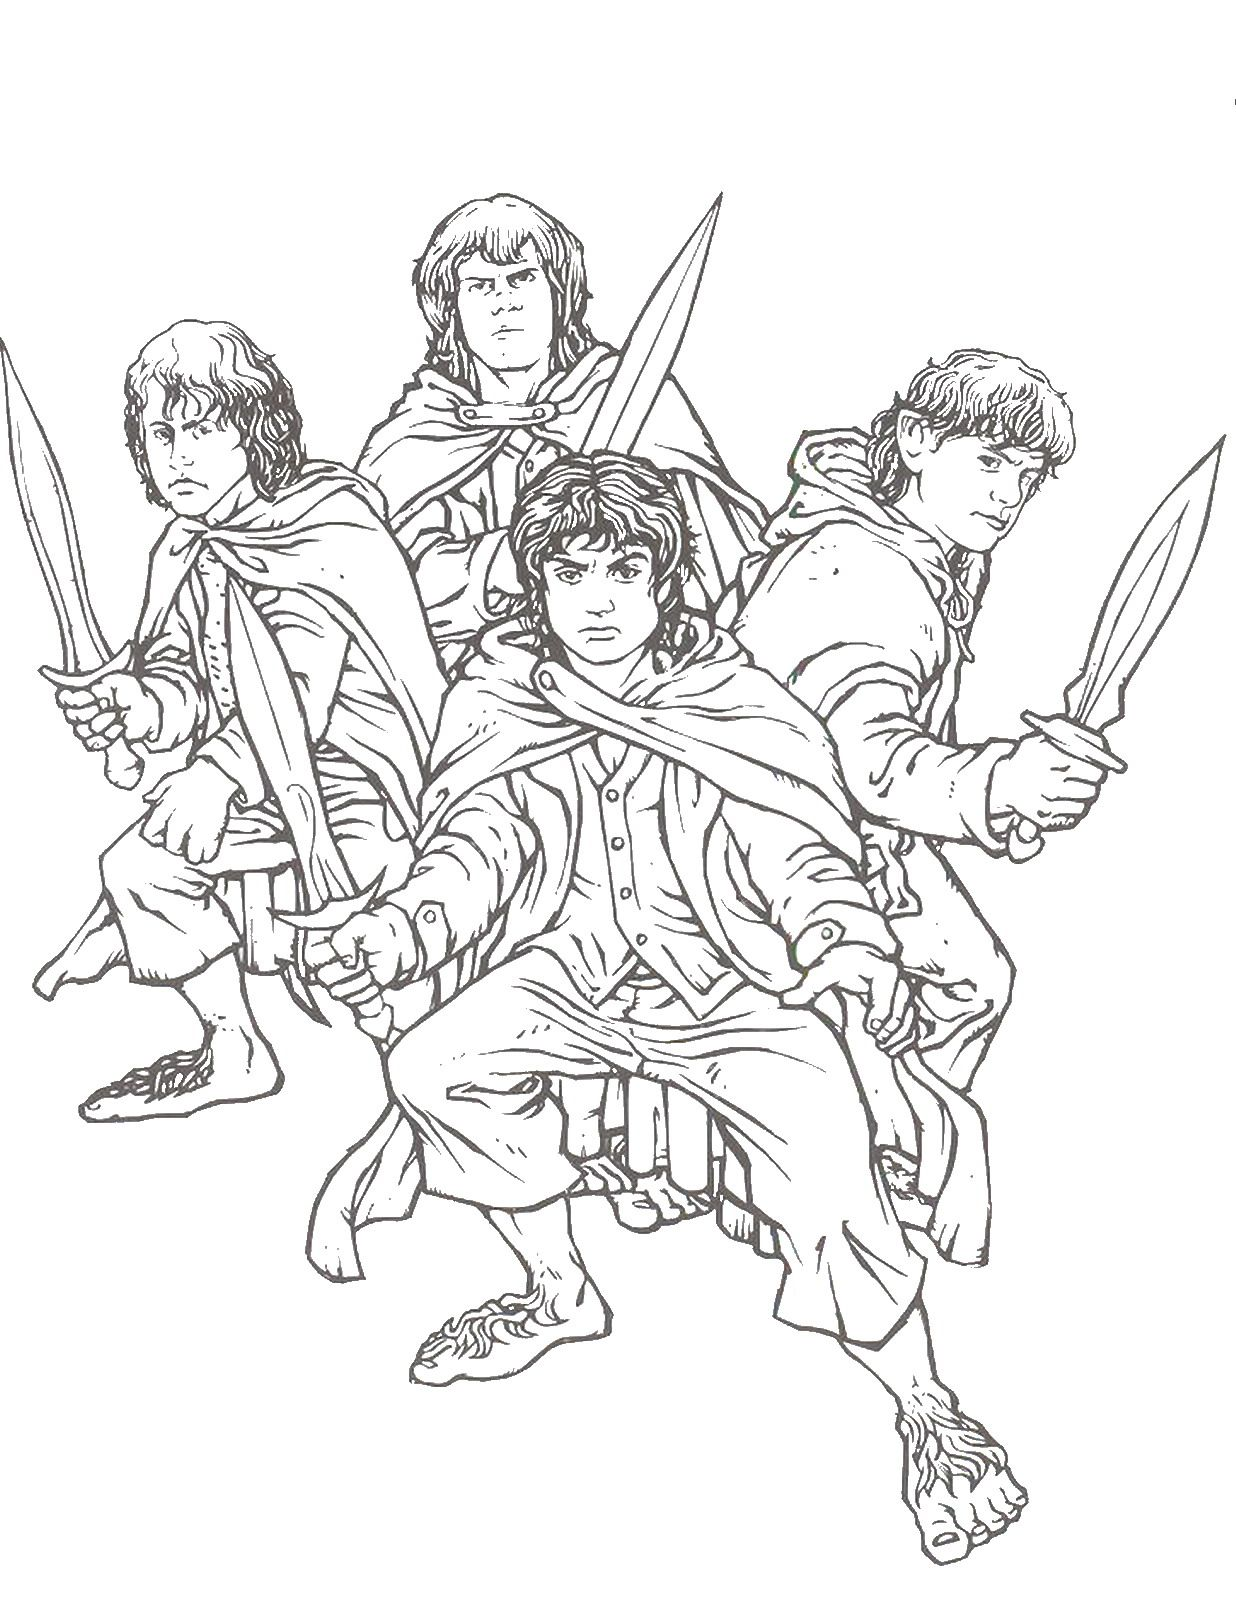 Lord Of The Rings Cl15 Jpg 1236 1600 Coloring Books Coloring Pages Cat Coloring Book